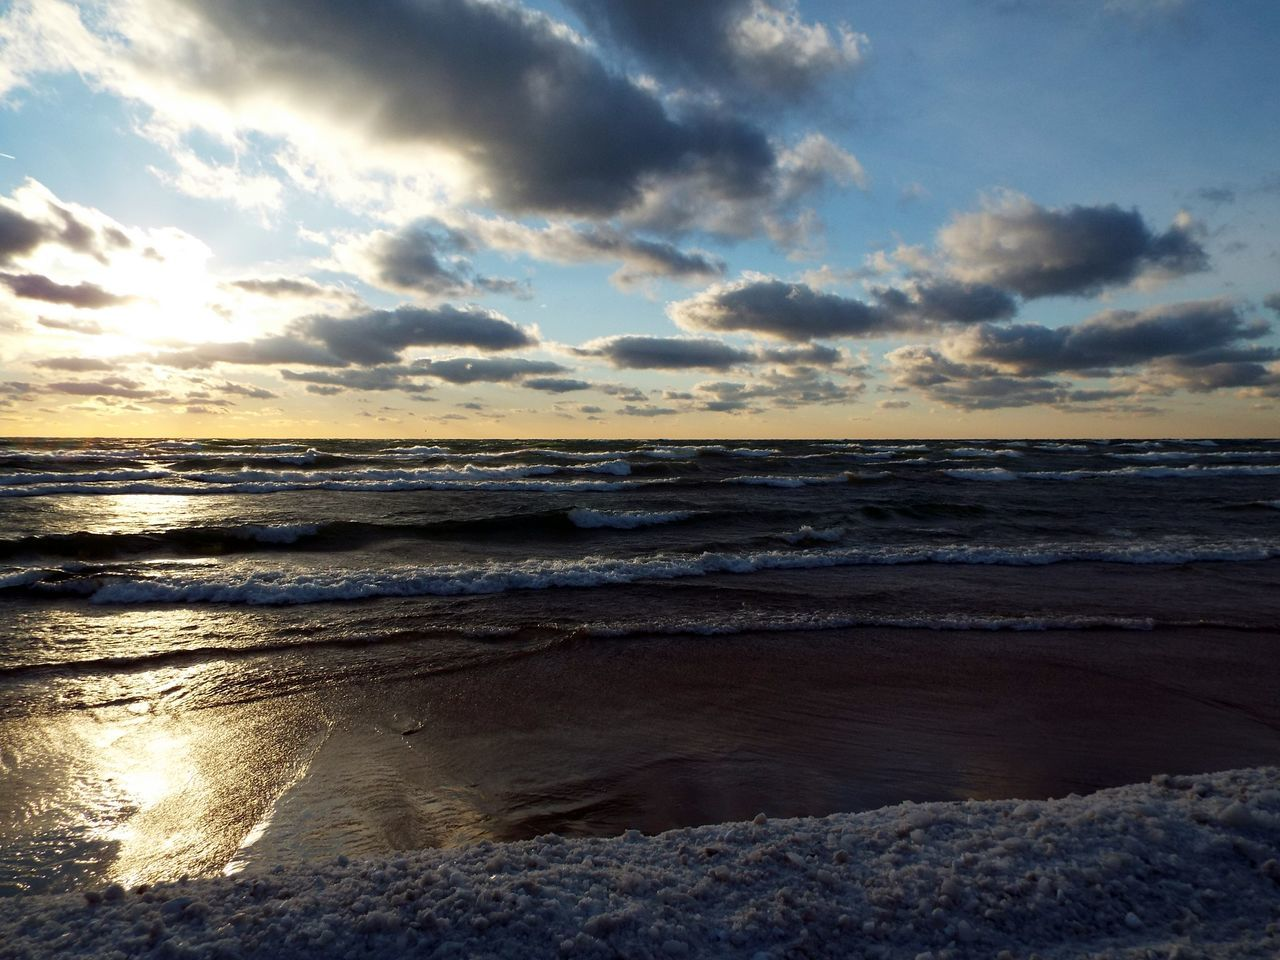 sea, water, beach, nature, beauty in nature, sunset, horizon over water, sky, scenics, tranquil scene, shore, tranquility, cloud - sky, idyllic, outdoors, wave, sand, no people, day